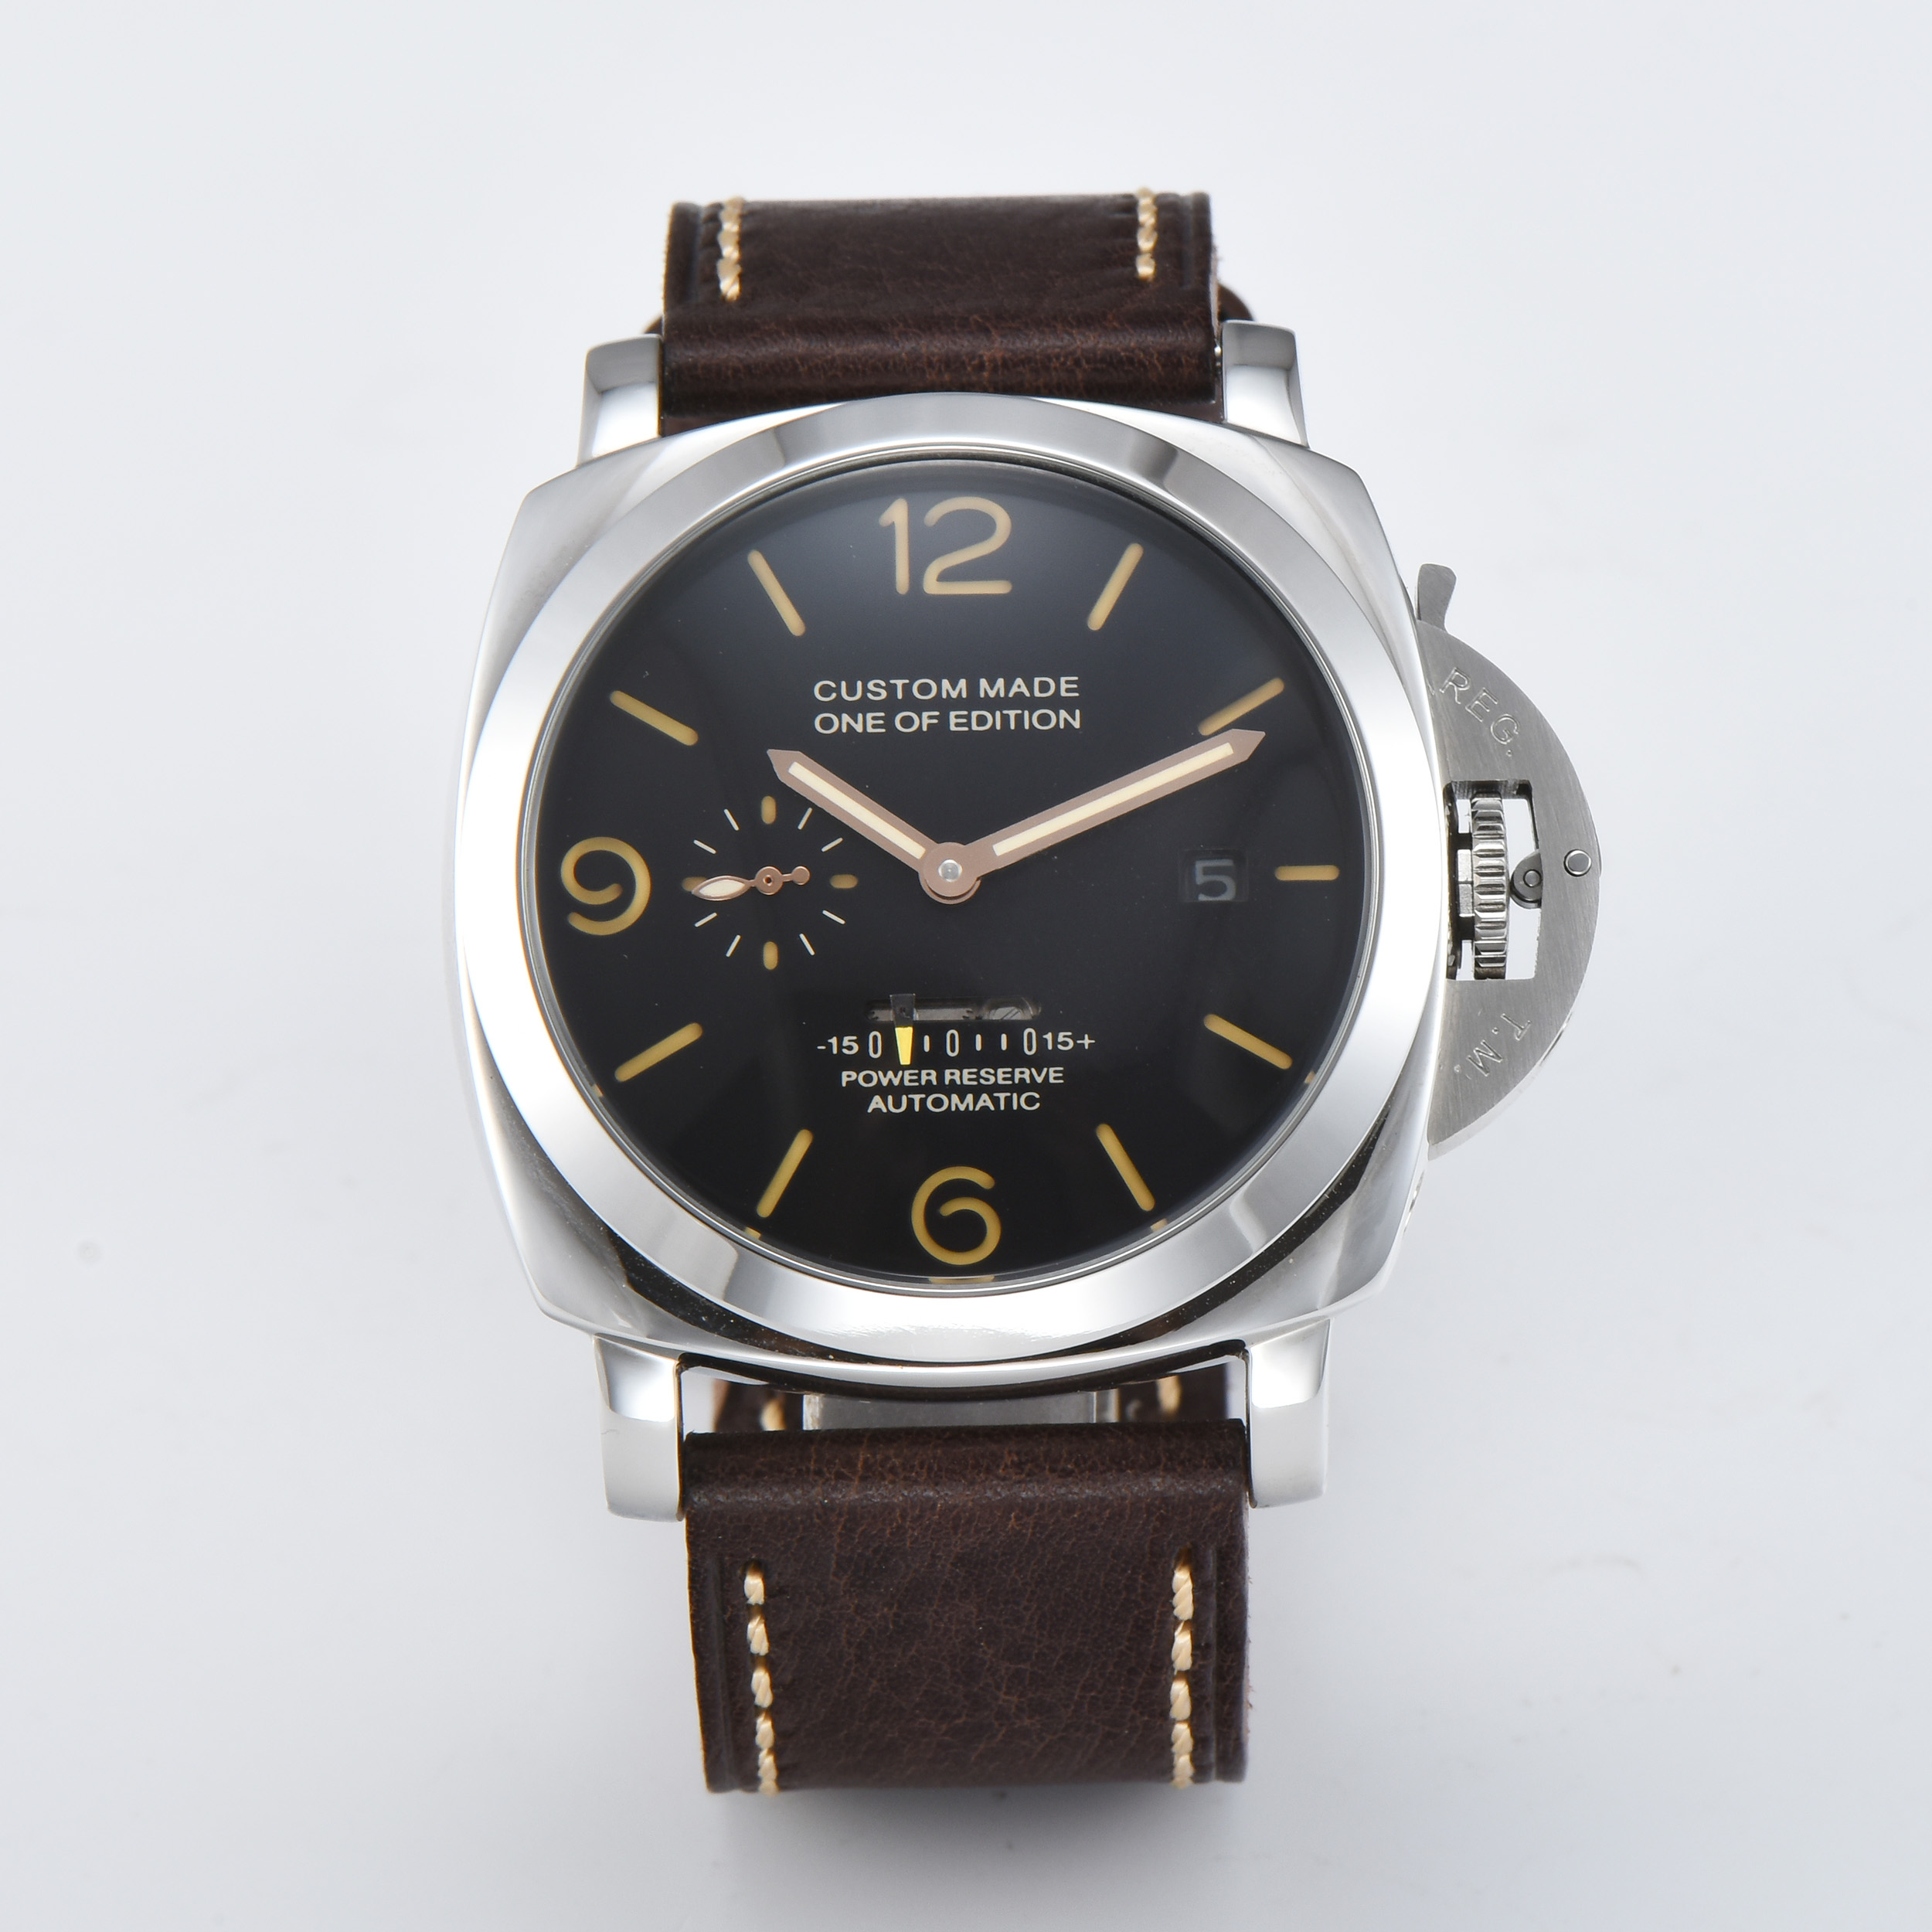 PARNIS Automatic pam watch 47mm Movement power reserve Stainless Steel case Men s Watch High Quality